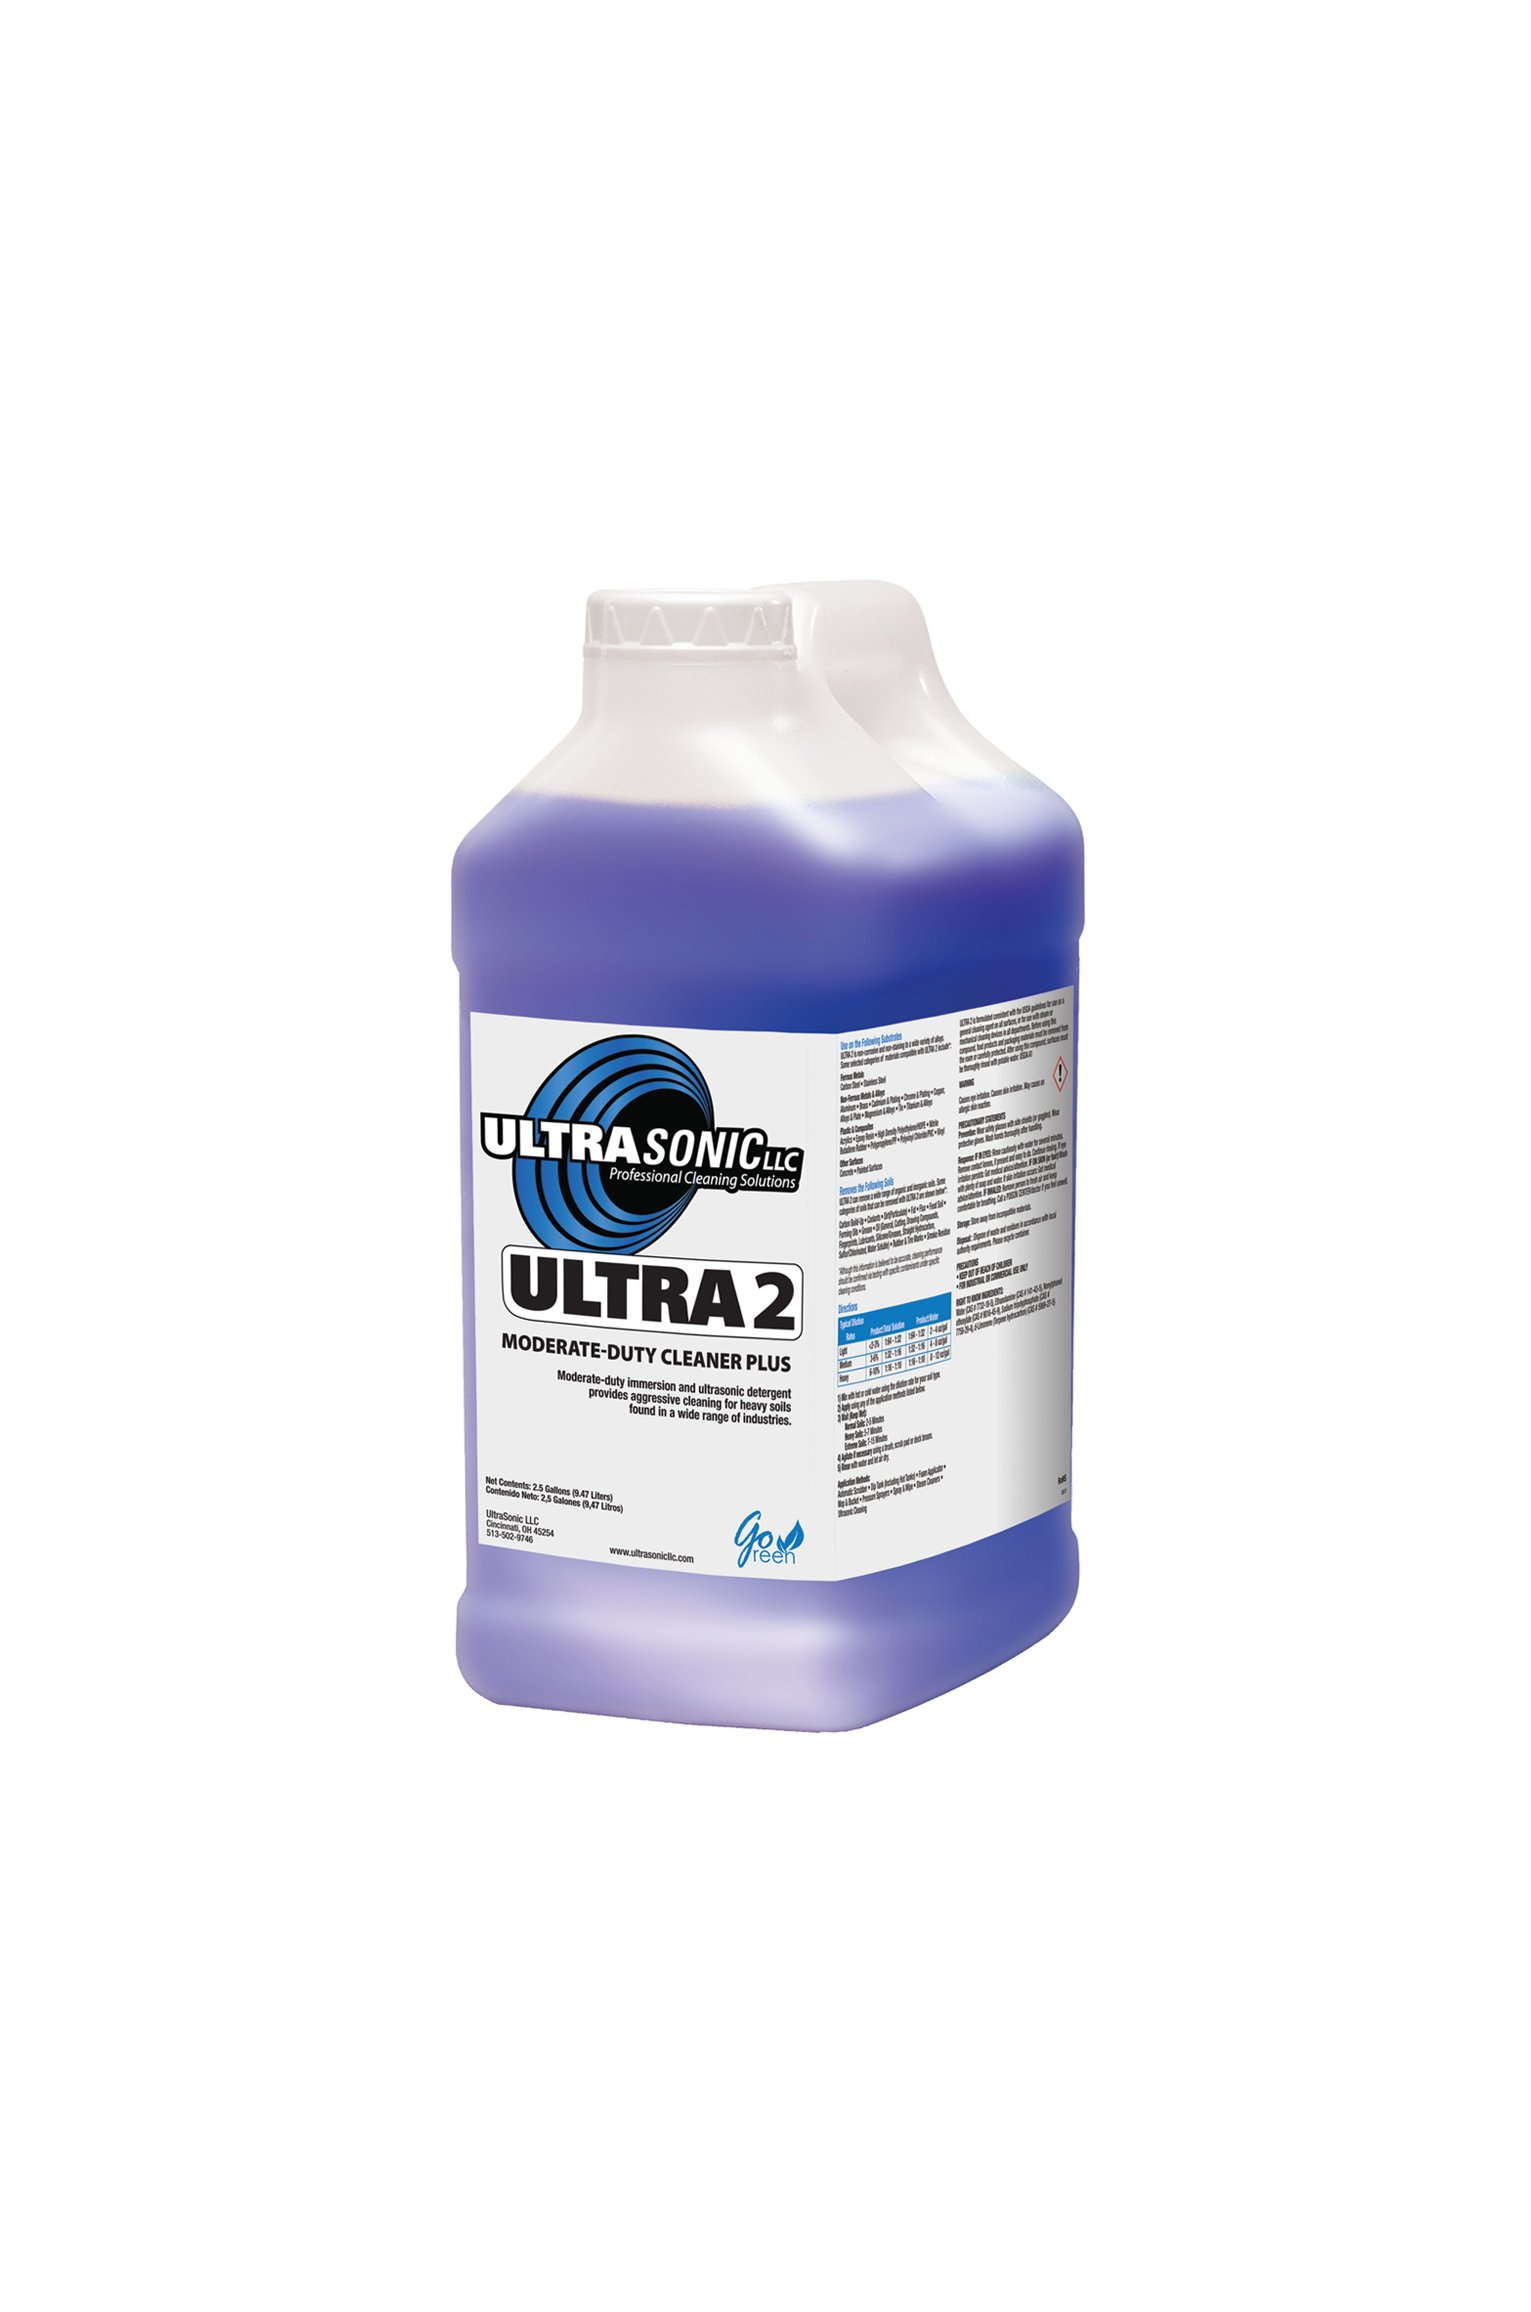 Ultra 2 Moderate Duty Ultrasonic Detergent - 2.5 Gallons